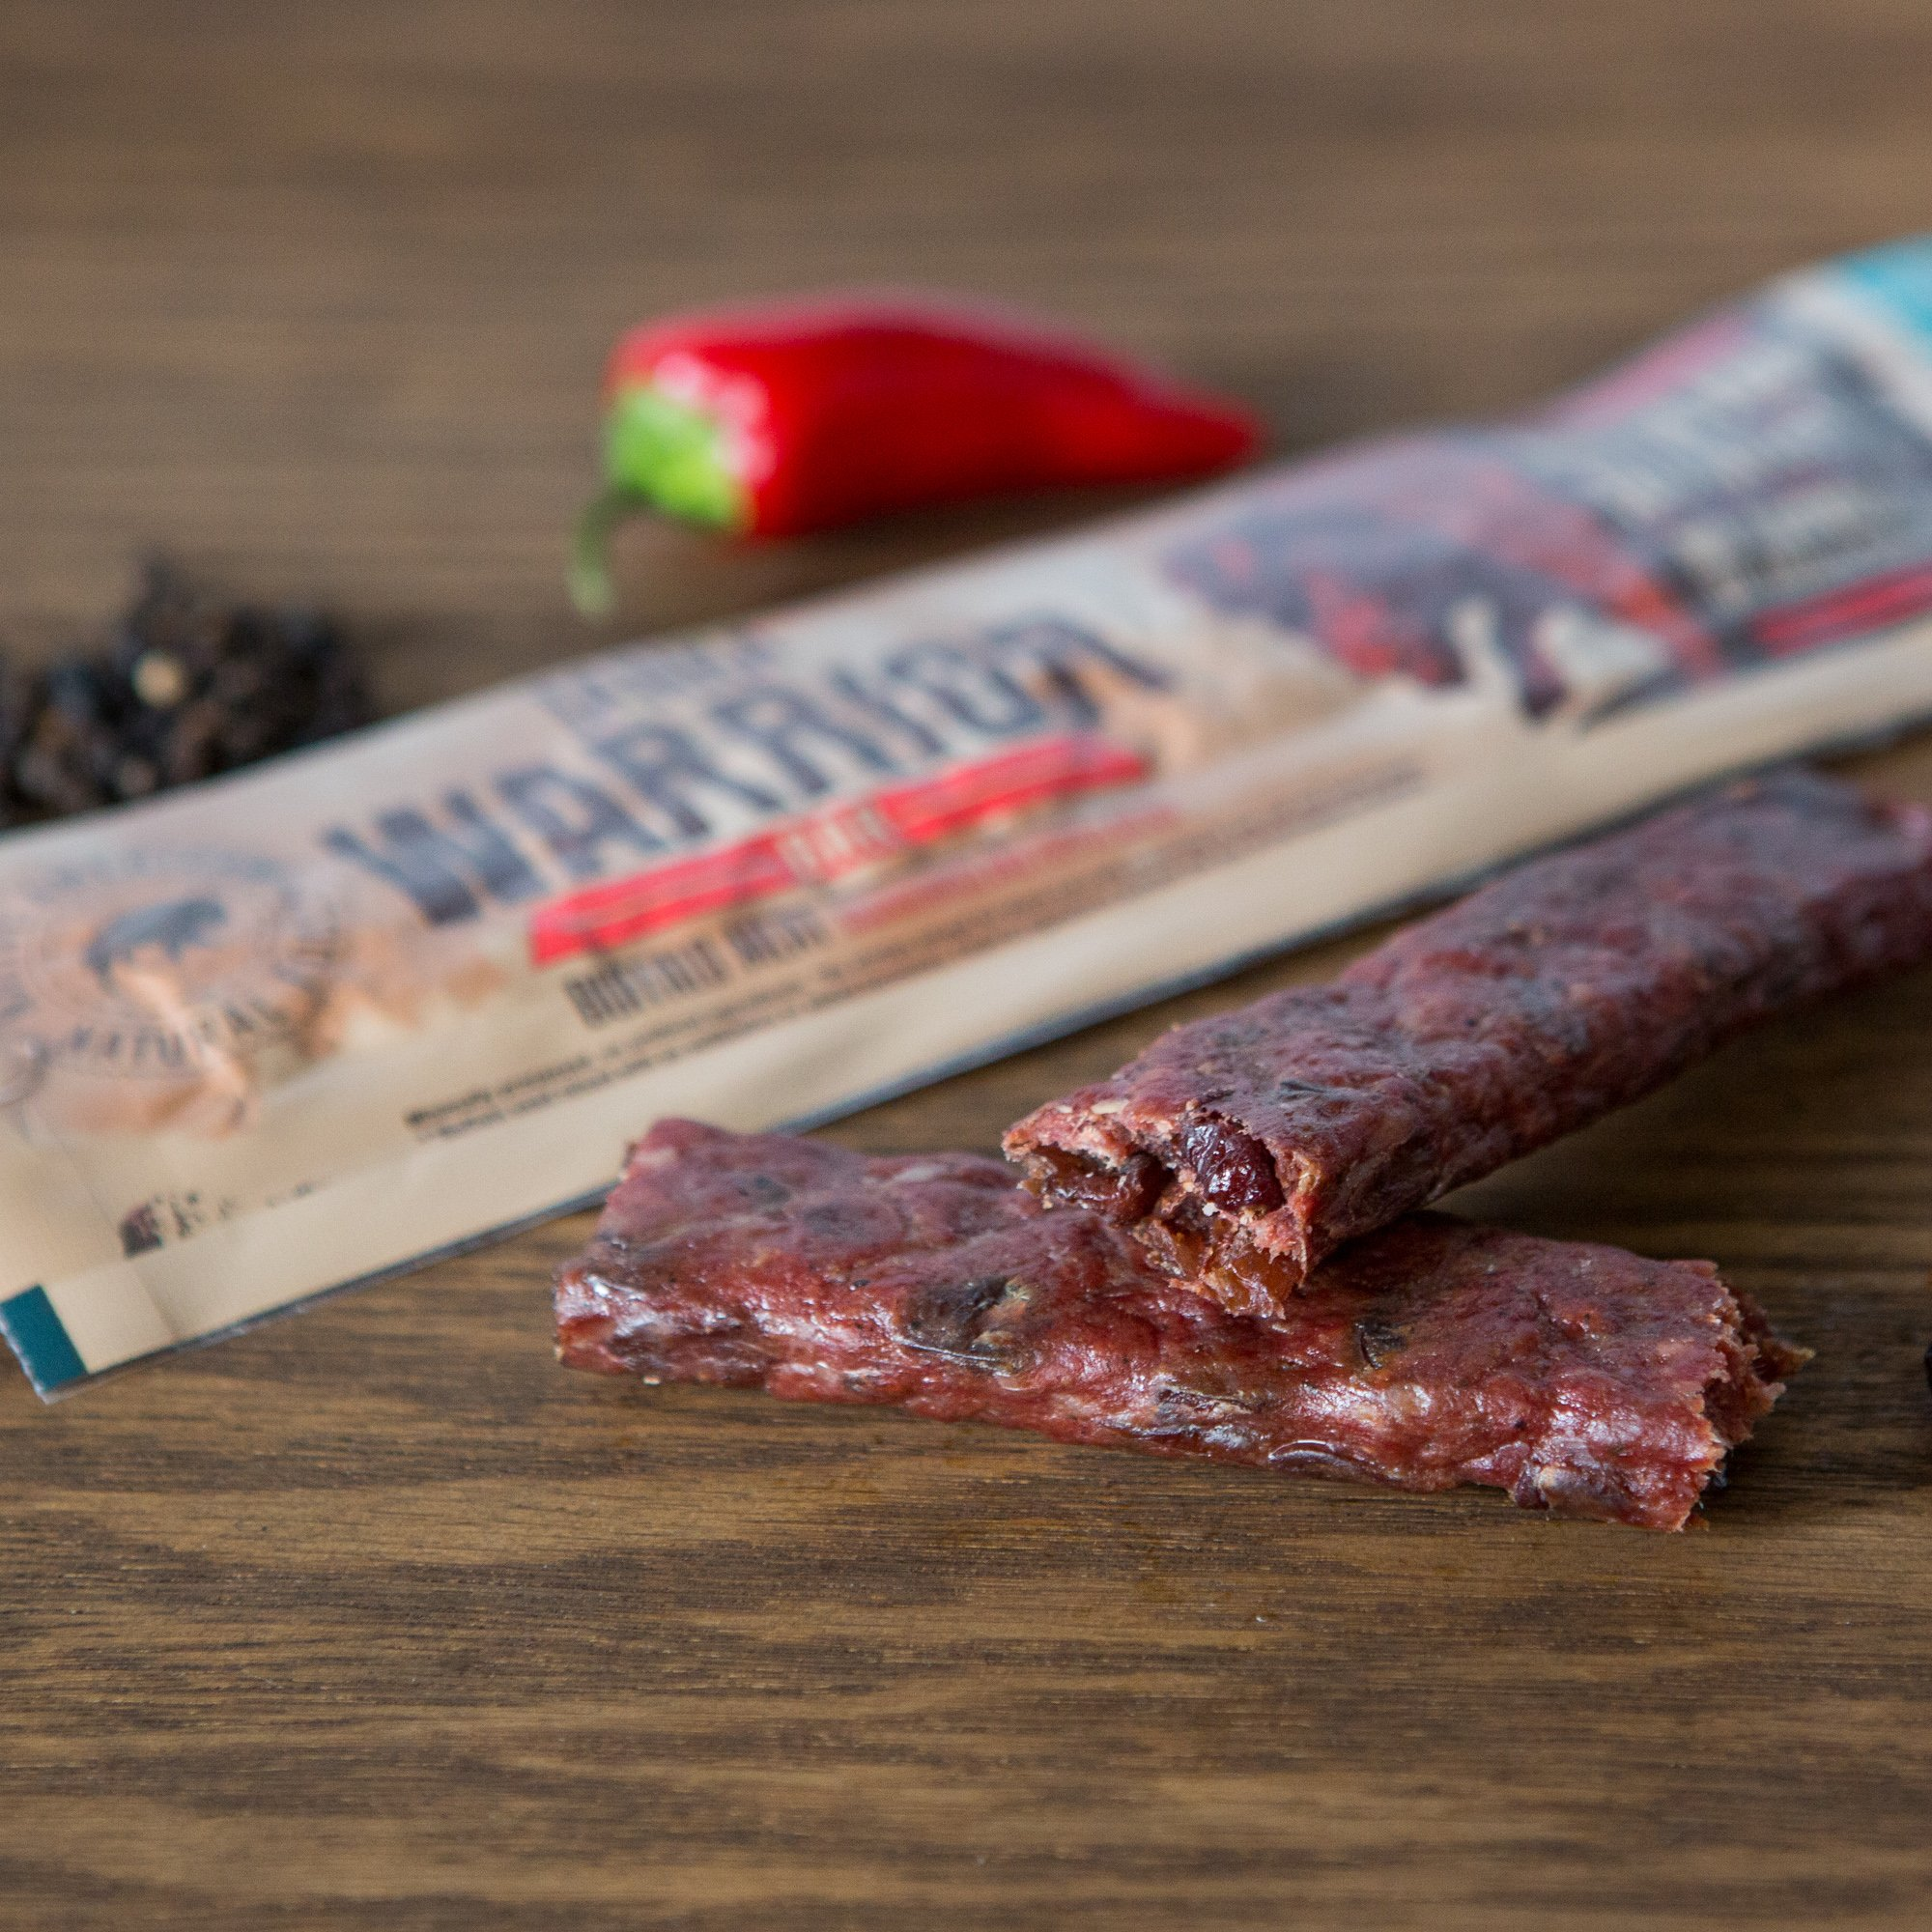 Bison Pemmican Meat Bar with Buffalo and Cranberries by Tanka, Gluten Free, Beef Jerky Alternative, Slow Smoked Original, 2 Ounce Bar, Pack of 12 by Tanka (Image #9)